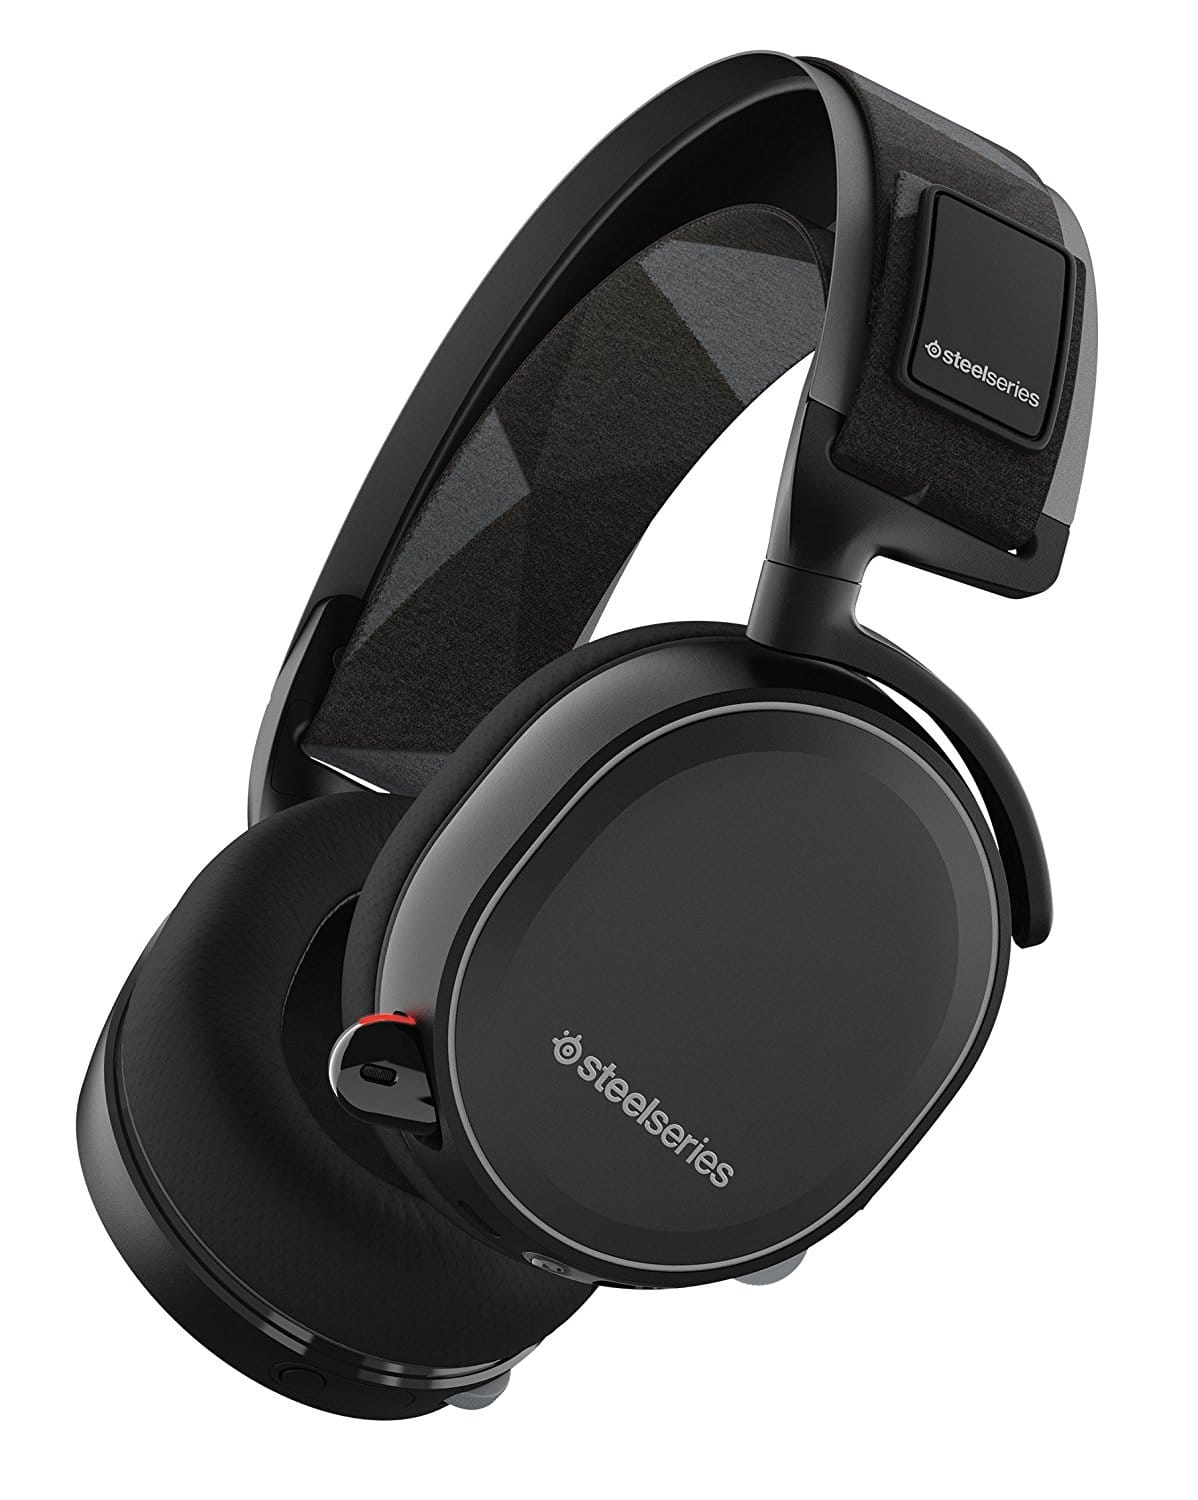 SteelSeries Arctis 7 Wireless Headset $108.99 + tax